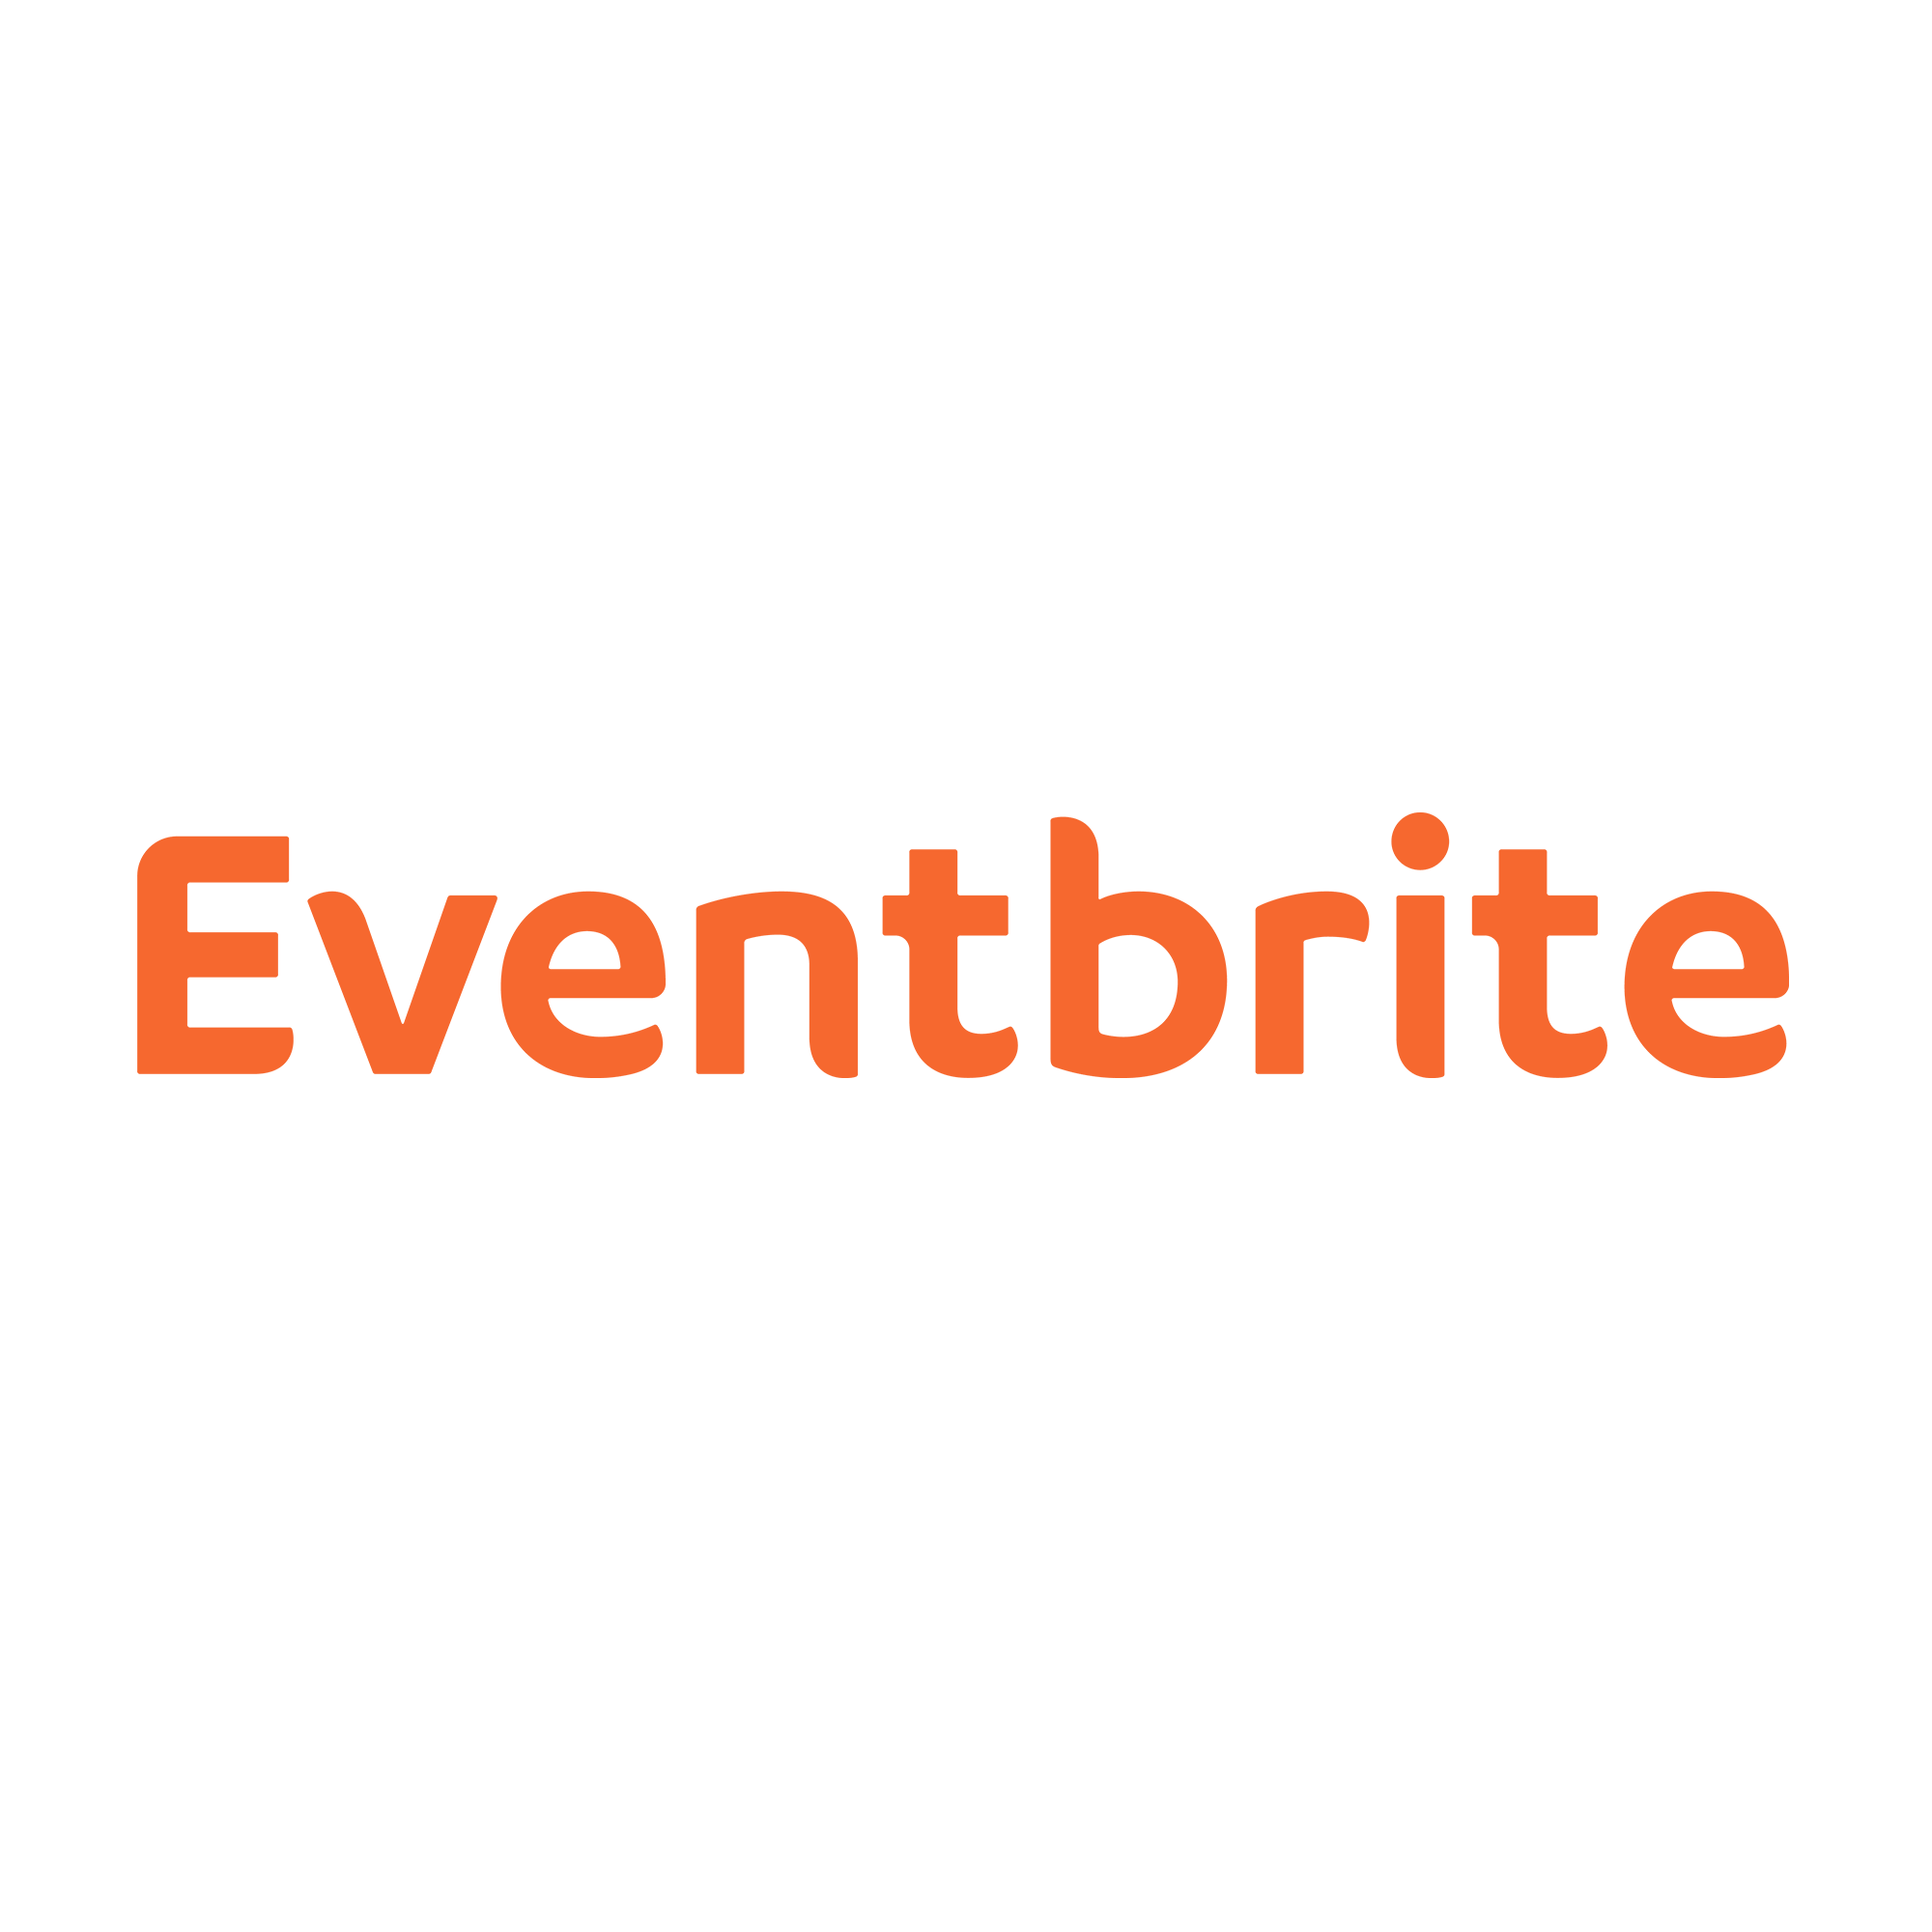 eventbrite orange sq logo.png